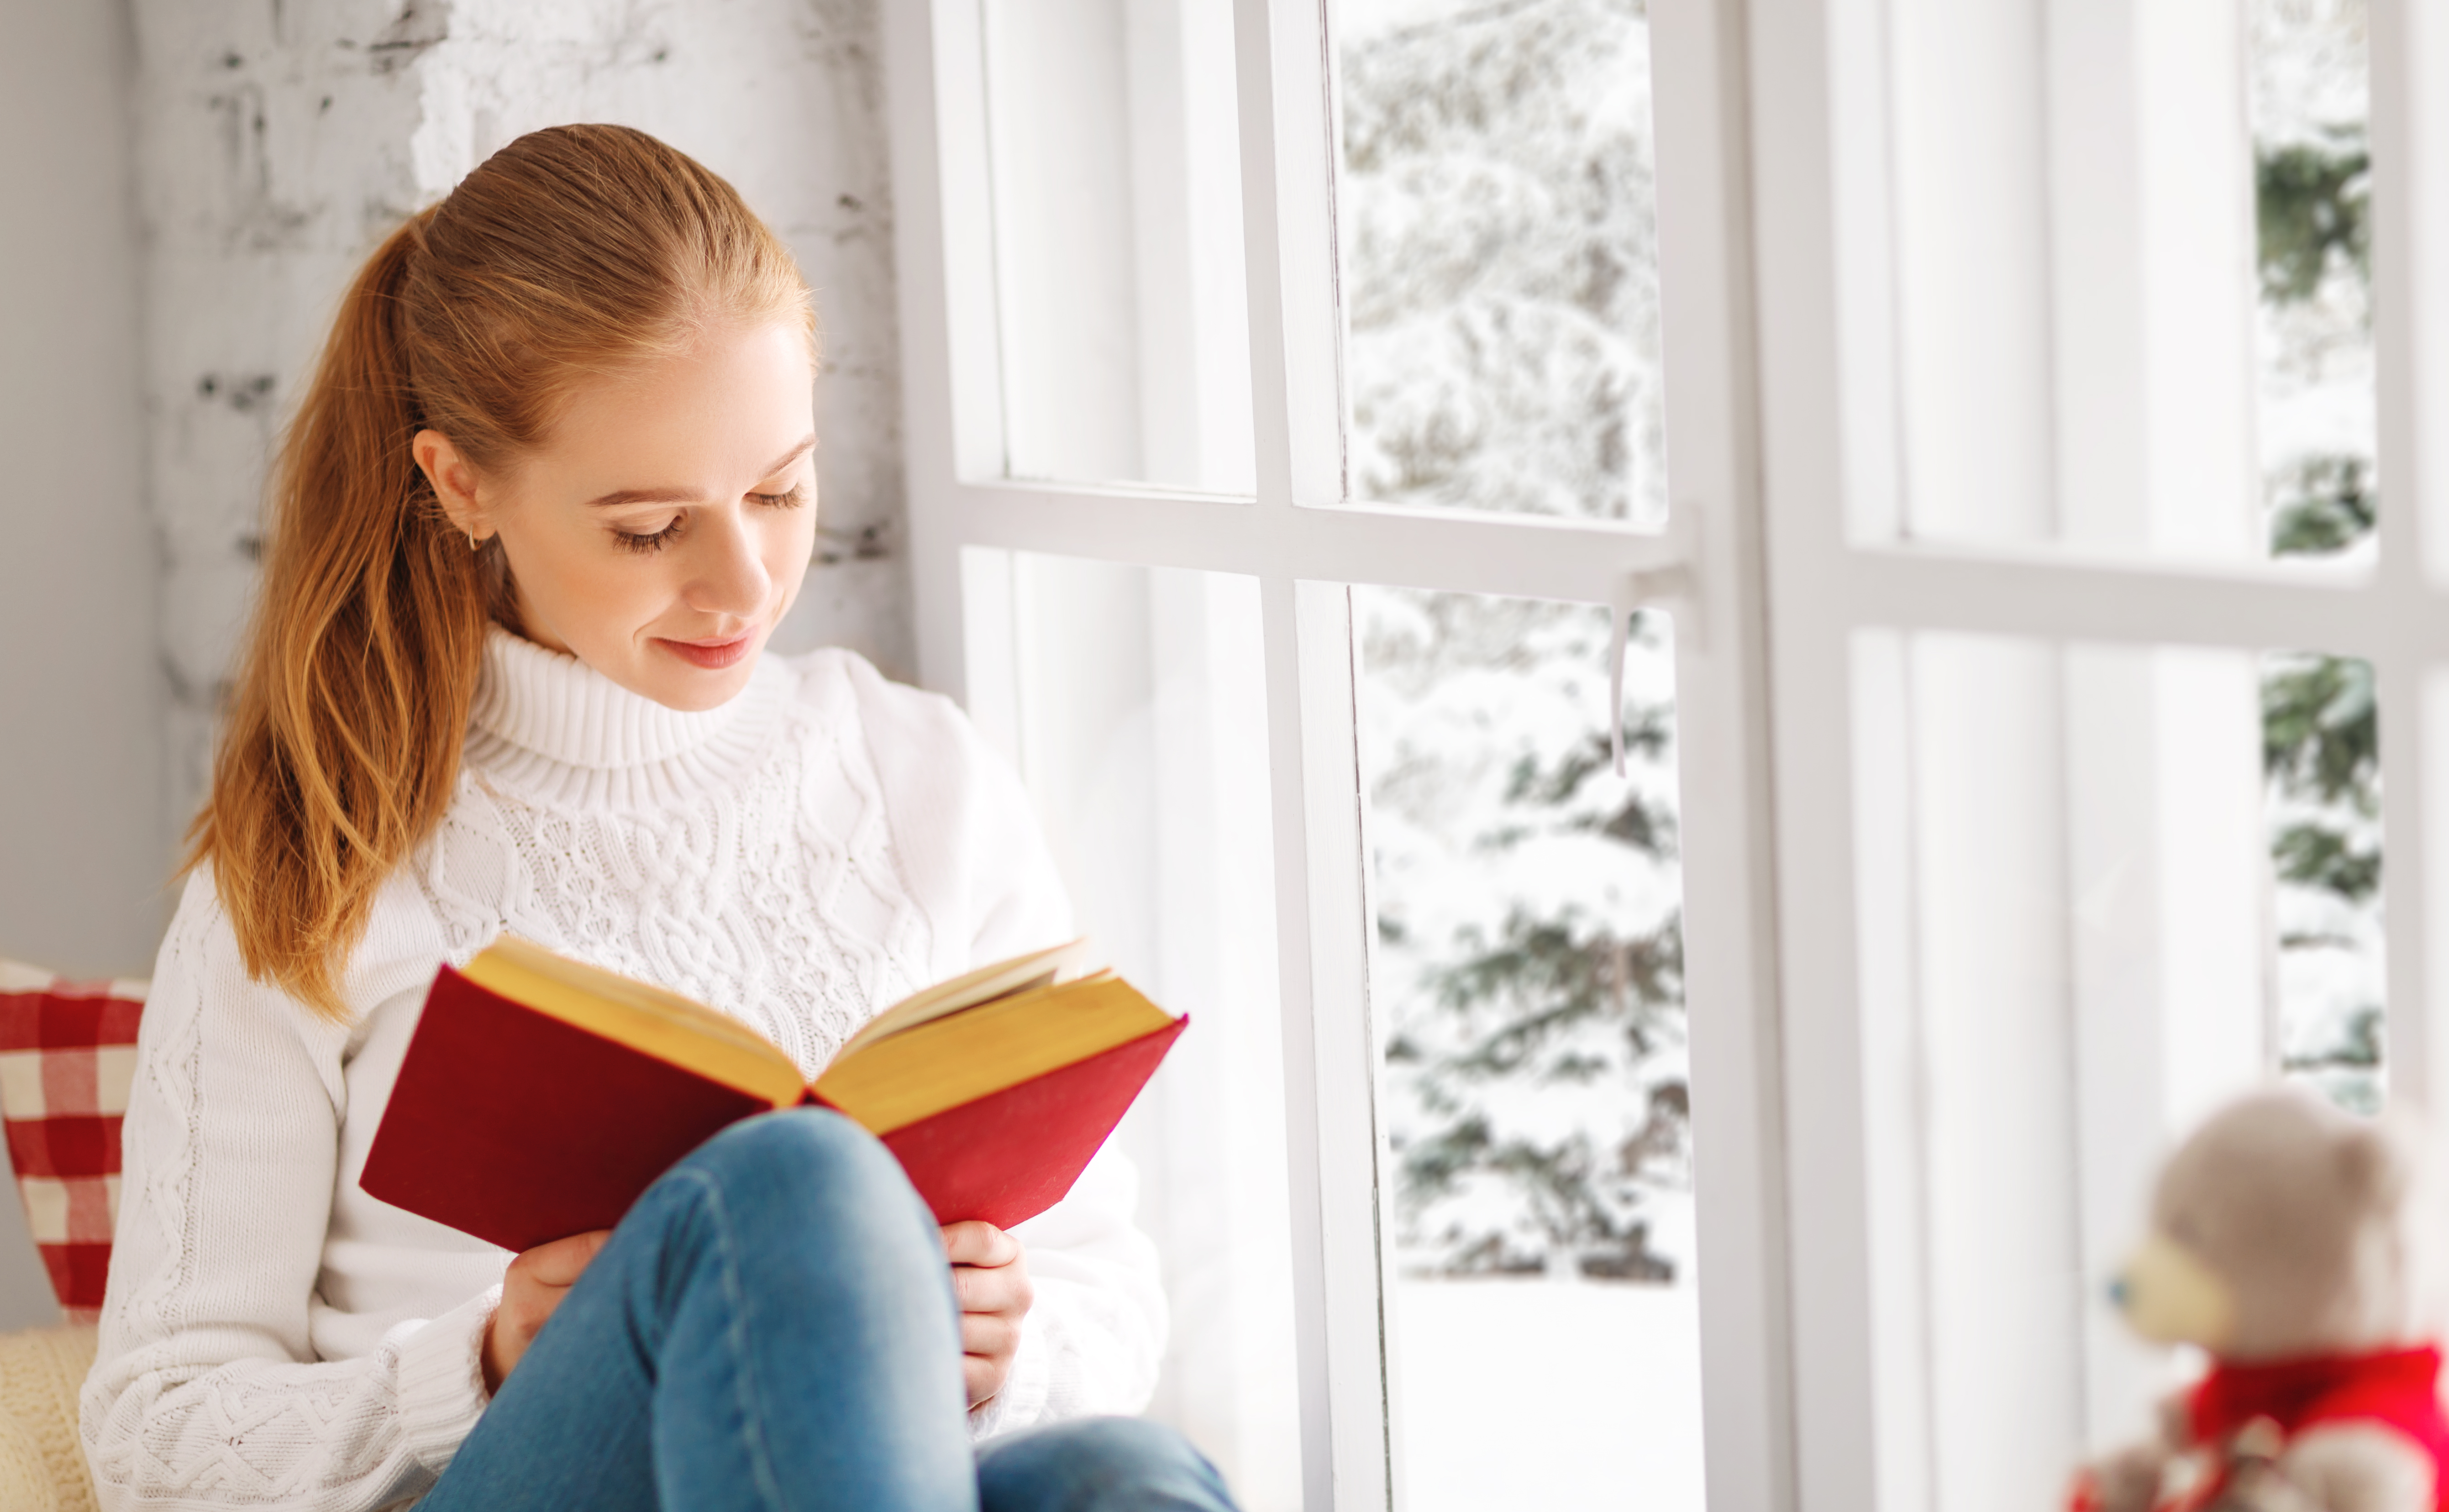 woman reading a book by replacement window in winter